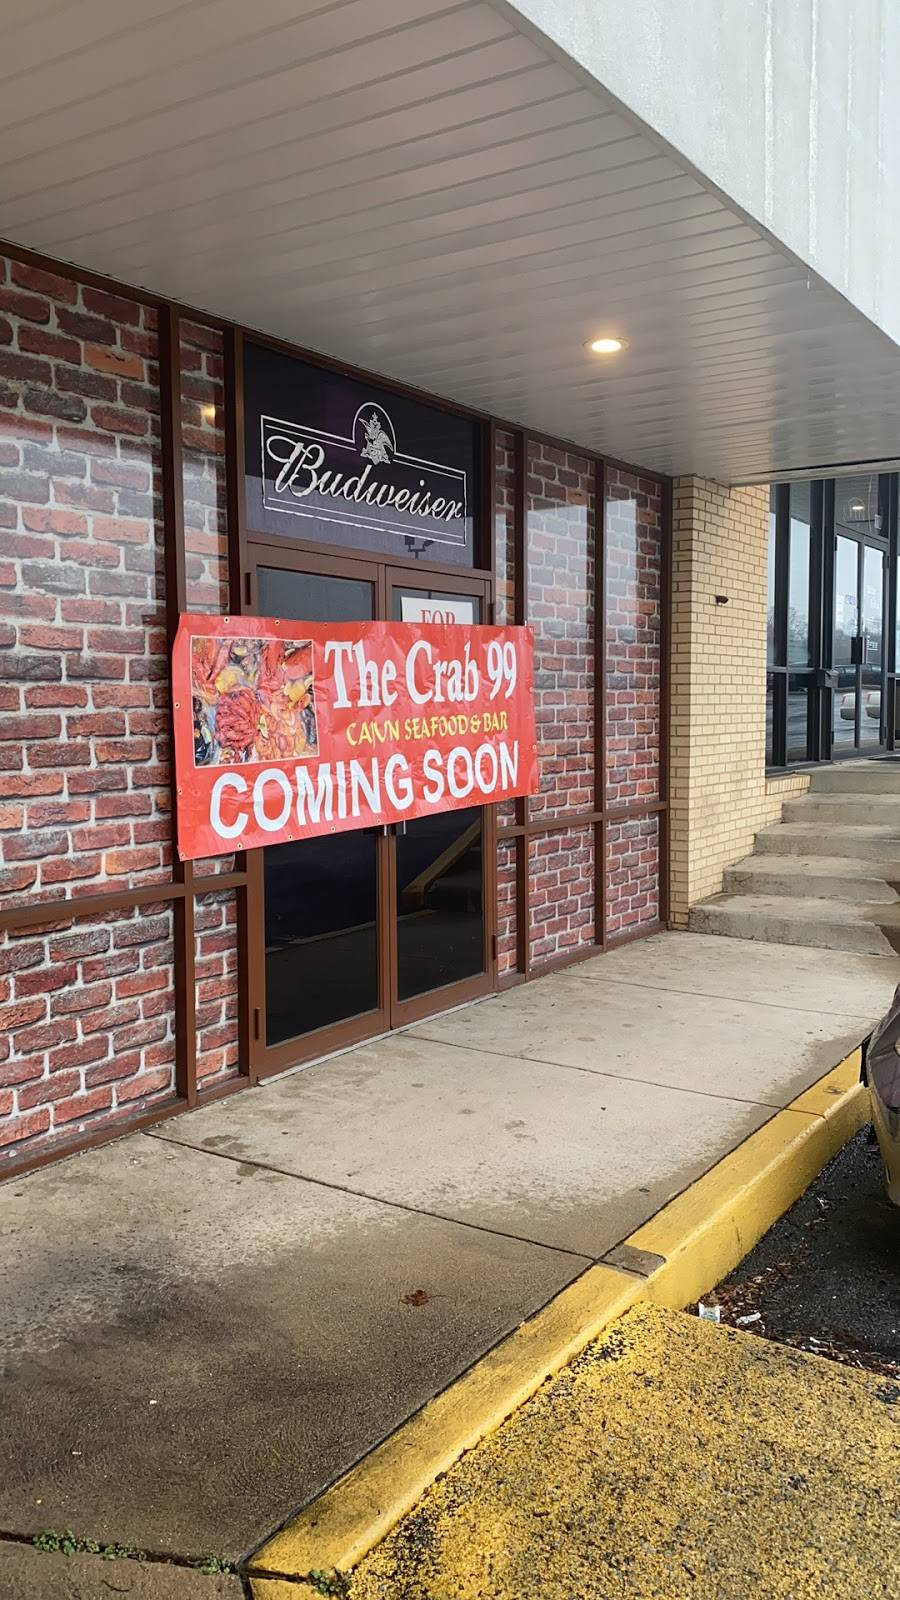 The crab 99 | restaurant | 116 Railway Ln, Hagerstown, MD 21740, USA | 2404521937 OR +1 240-452-1937